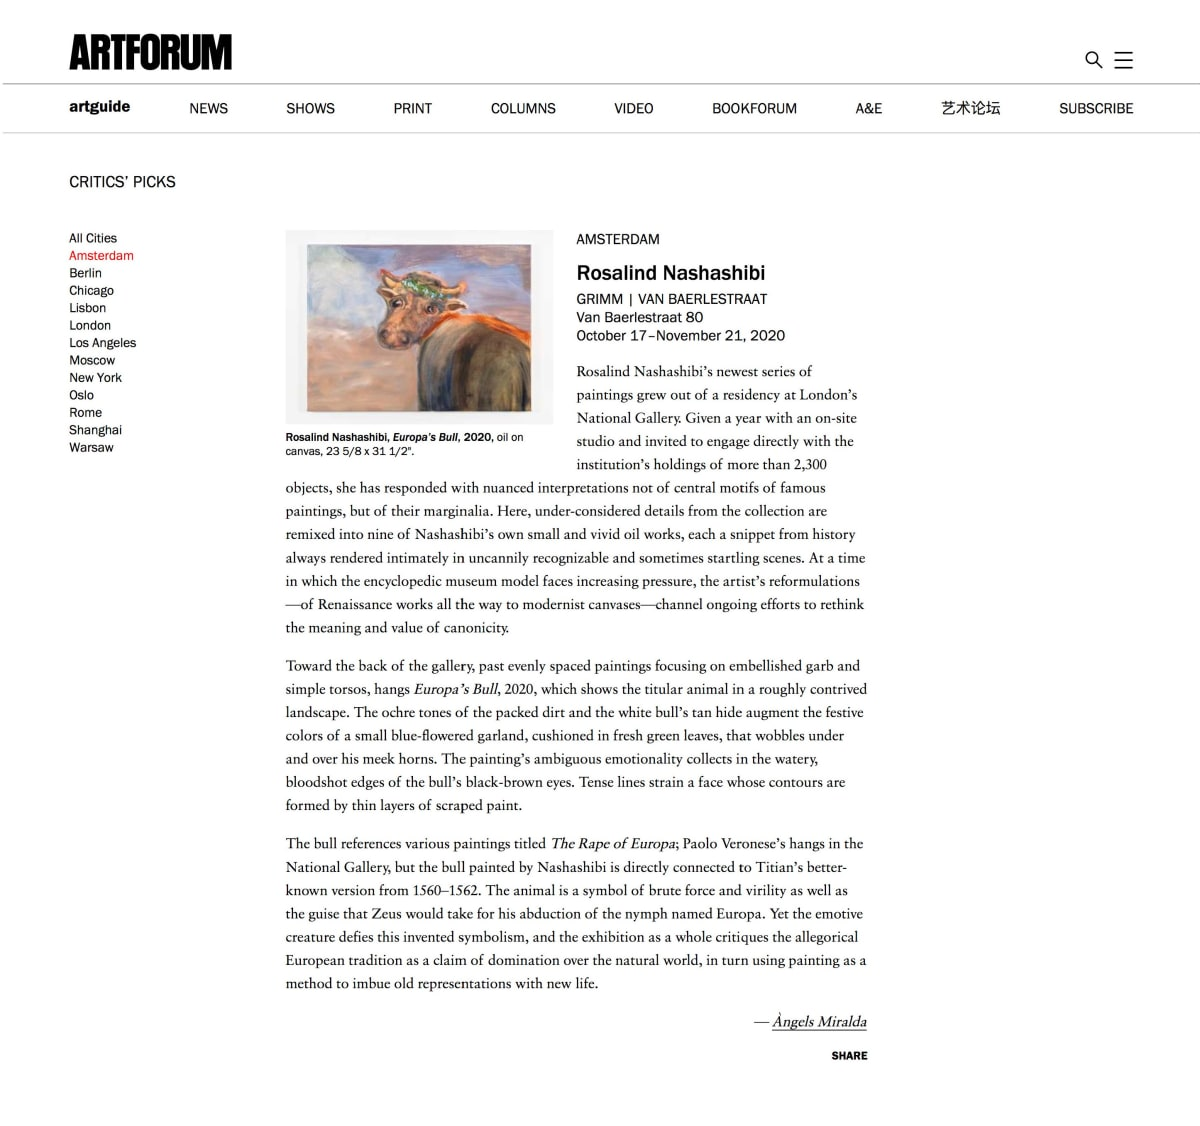 ARTFORUM picks Rosalind Nashashibi